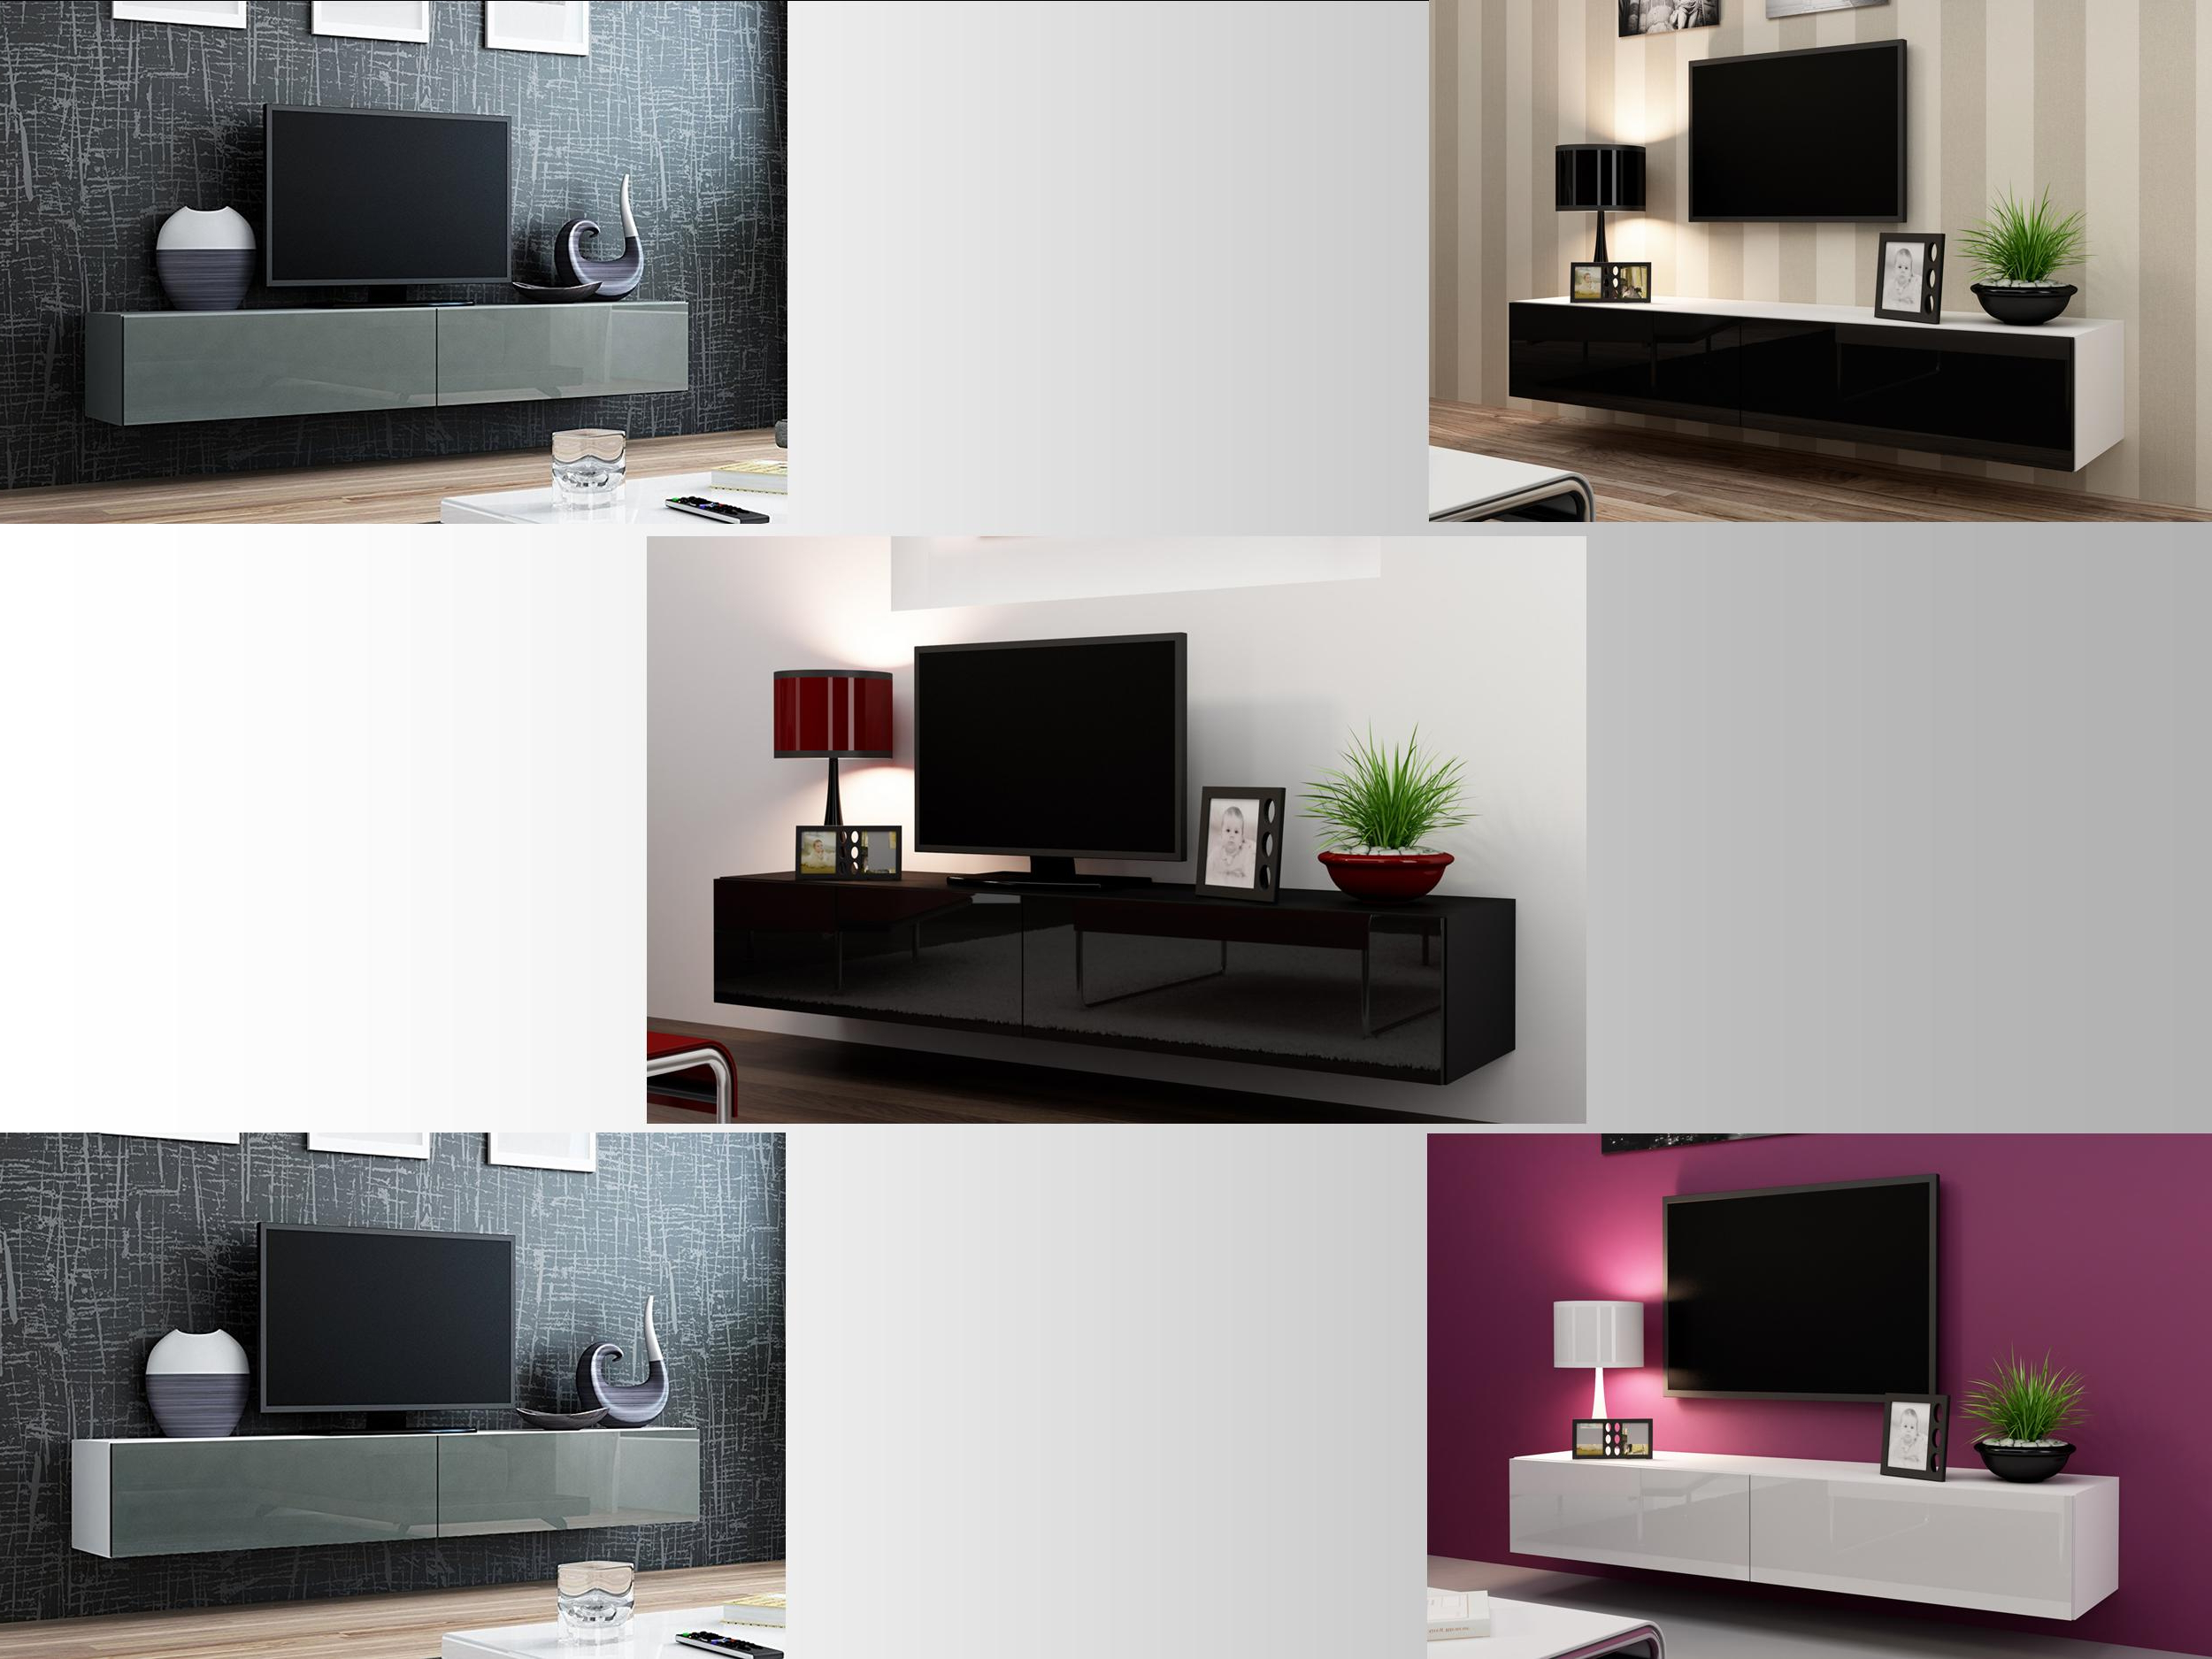 High Gloss Tv Cabinets With Well Known High Gloss Tv Stand Entertainment Cabinet 180Cm Floating Wall (View 3 of 20)